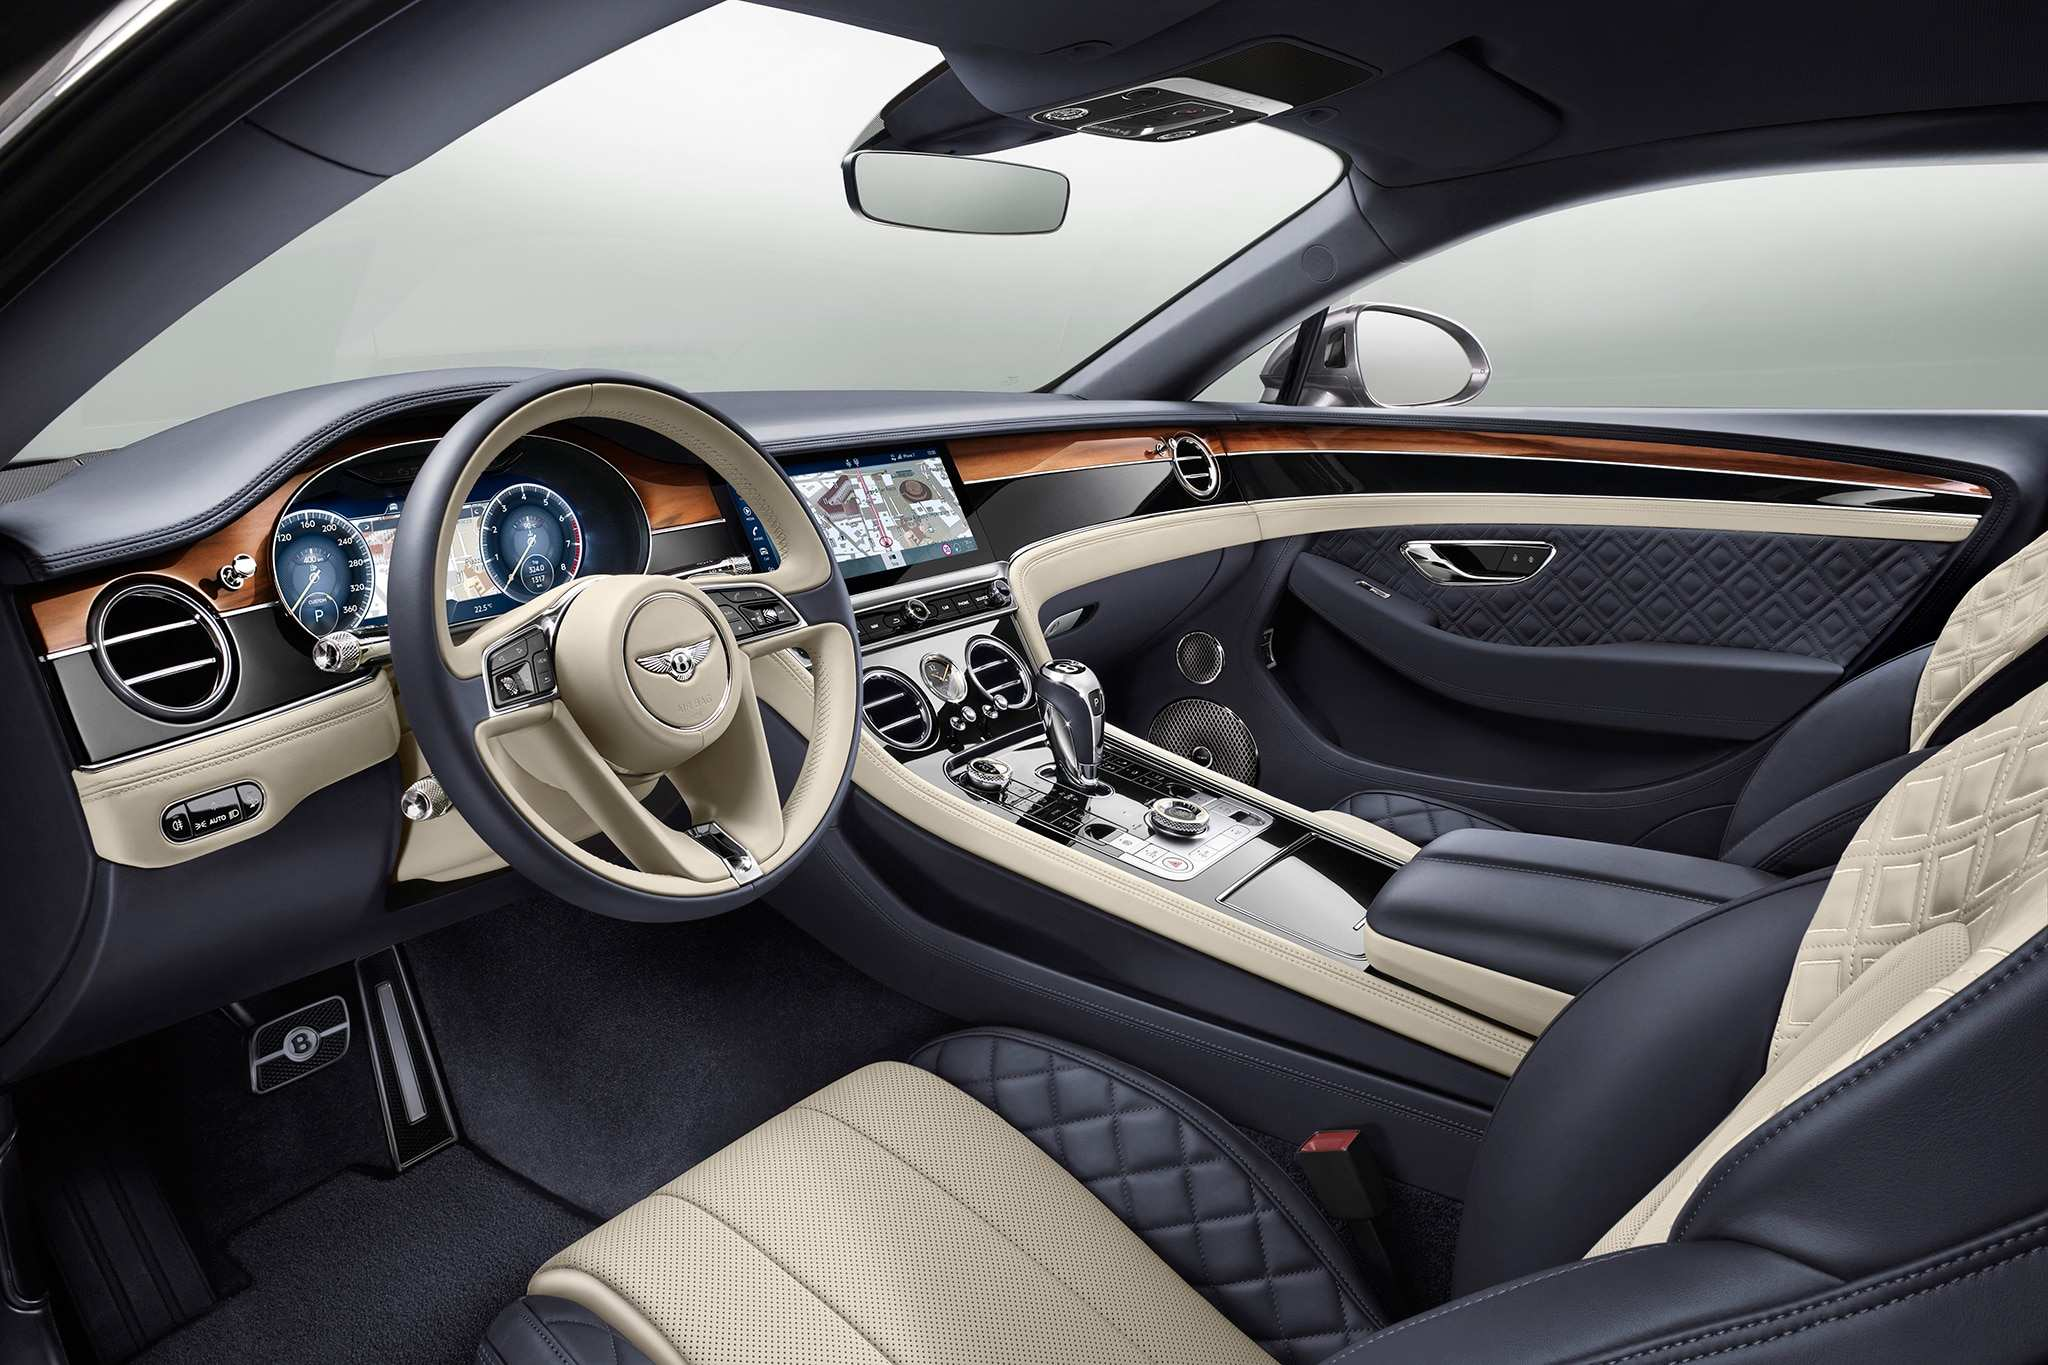 83 All New 2019 Bentley Continental Gt Msrp Spesification by 2019 Bentley Continental Gt Msrp